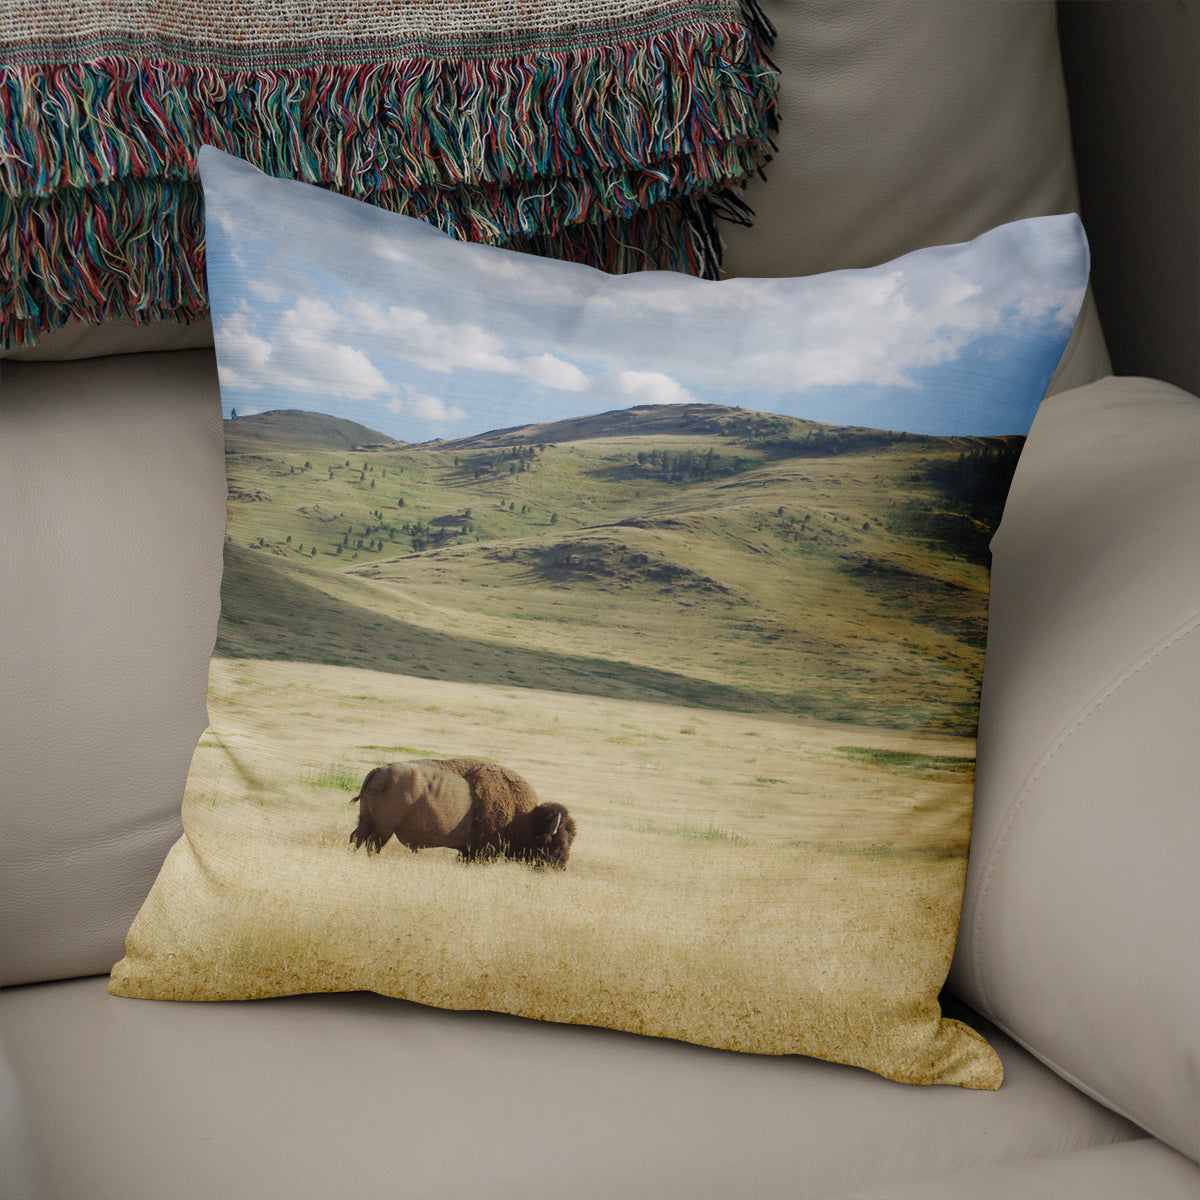 Bison on the Range, Montana Throw Pillow - 5 Sizes